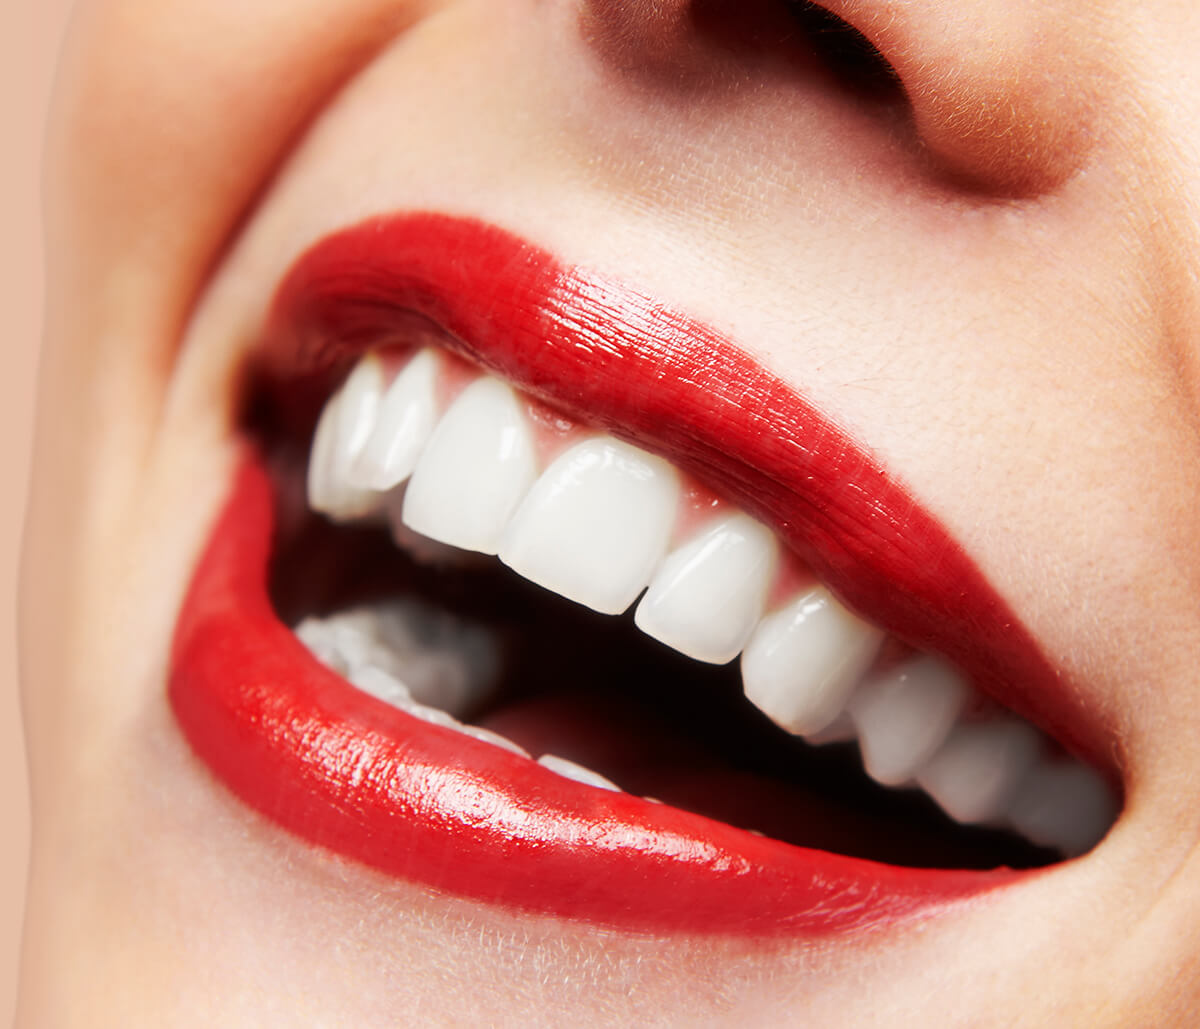 Parents in Scottsdale Seeking Answers on If Dental Veneers for Teens Are Suitable and Worth the Cost